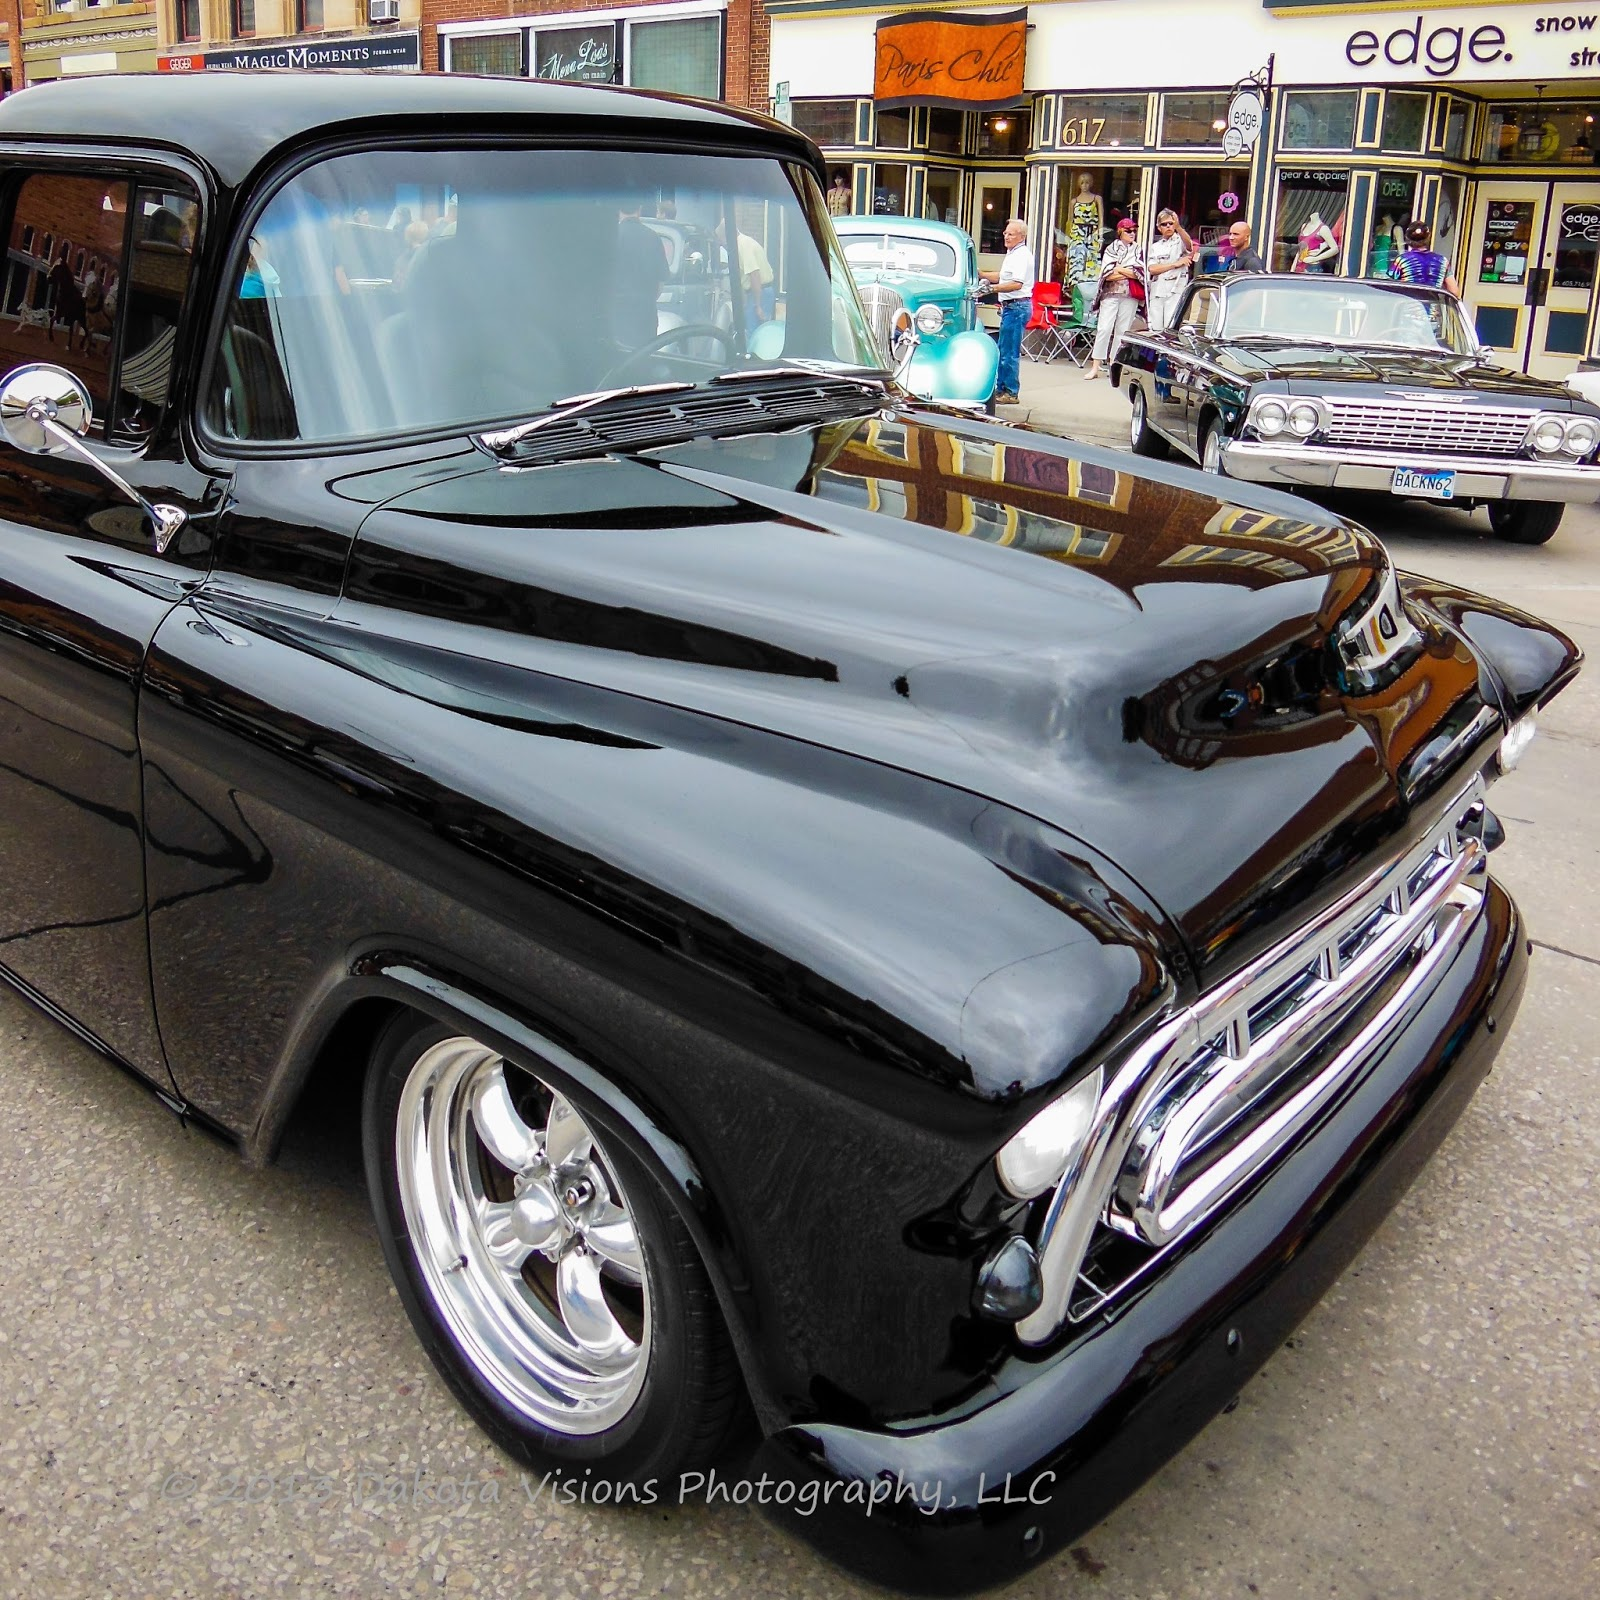 See You Behind The Lens Top Car Show Photography Tips - Car show photography